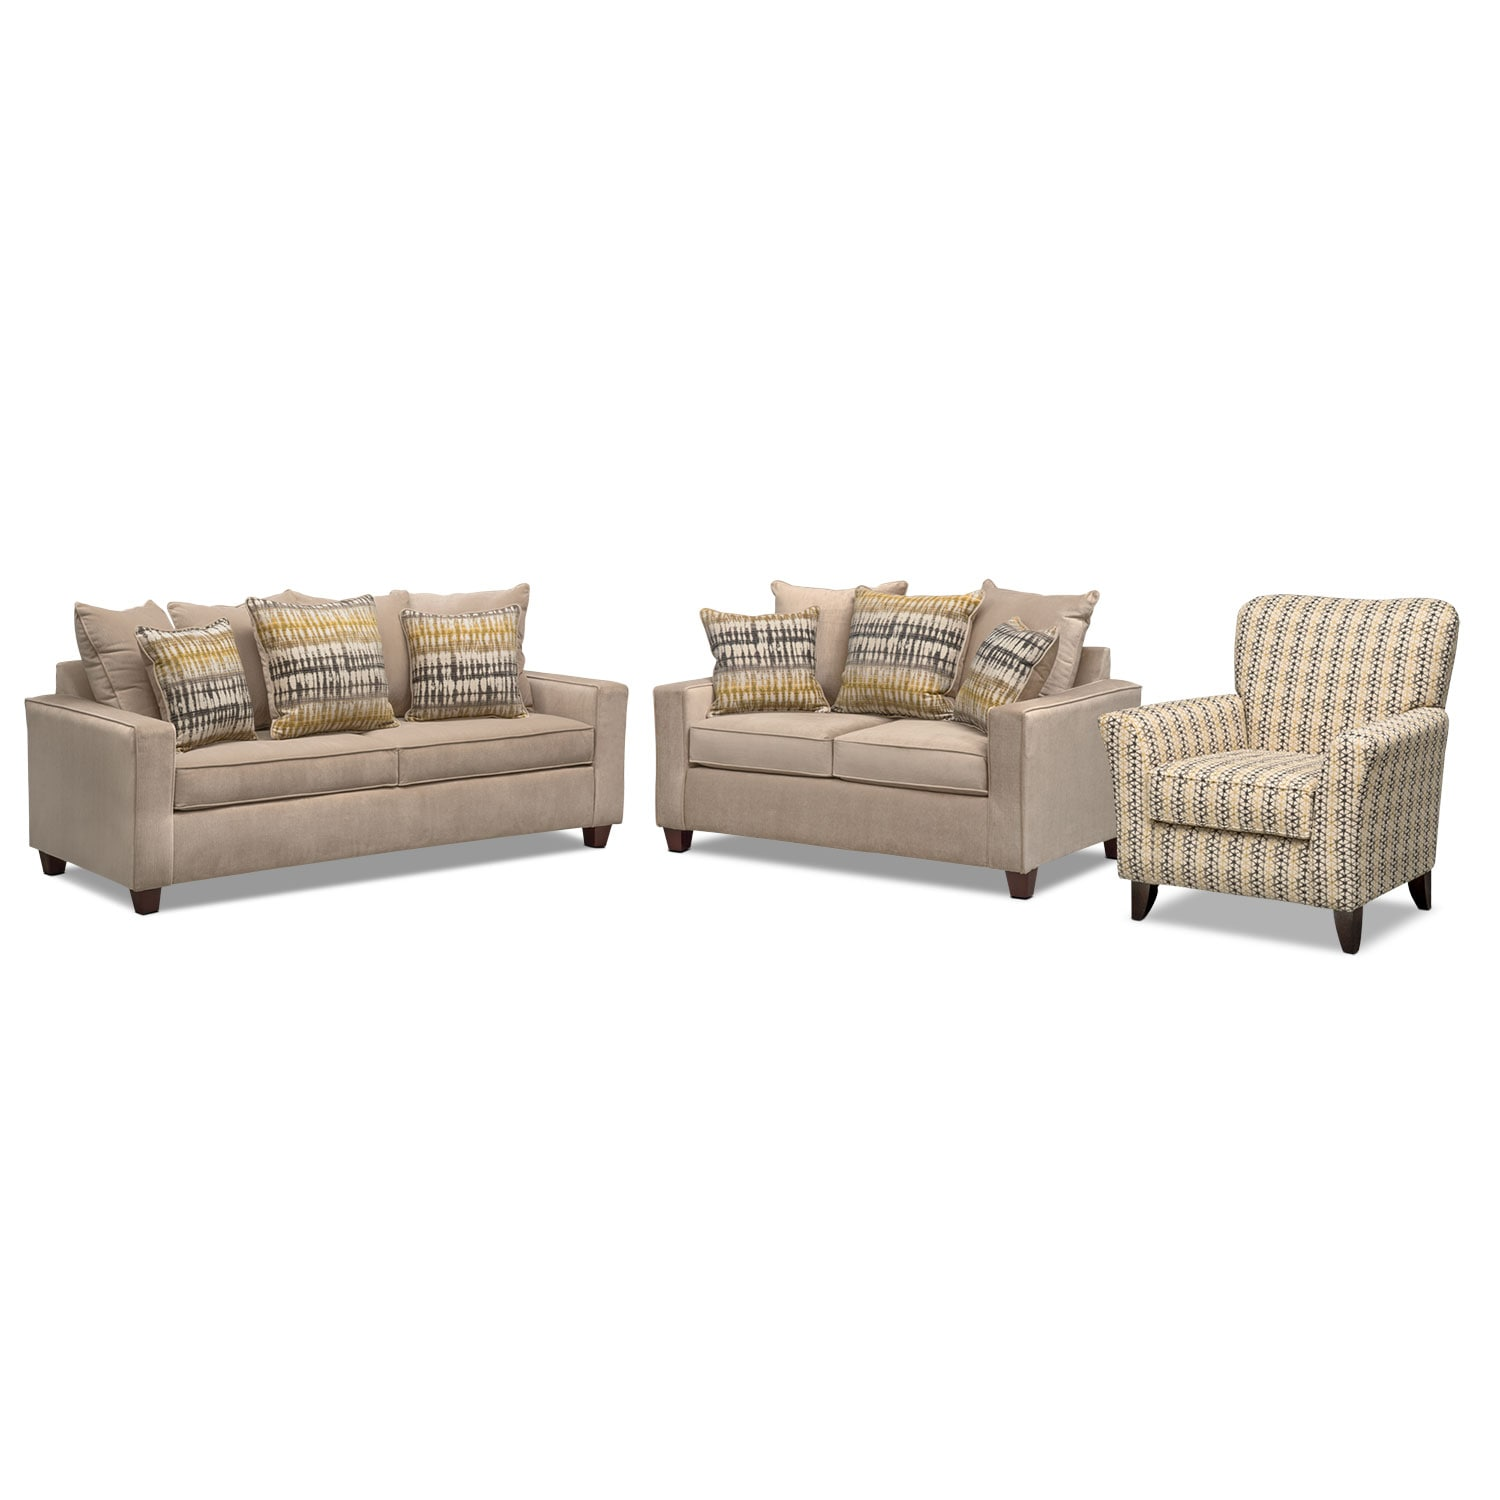 living room sofa and loveseat sets design ideas grey bryden accent chair set american signature furniture